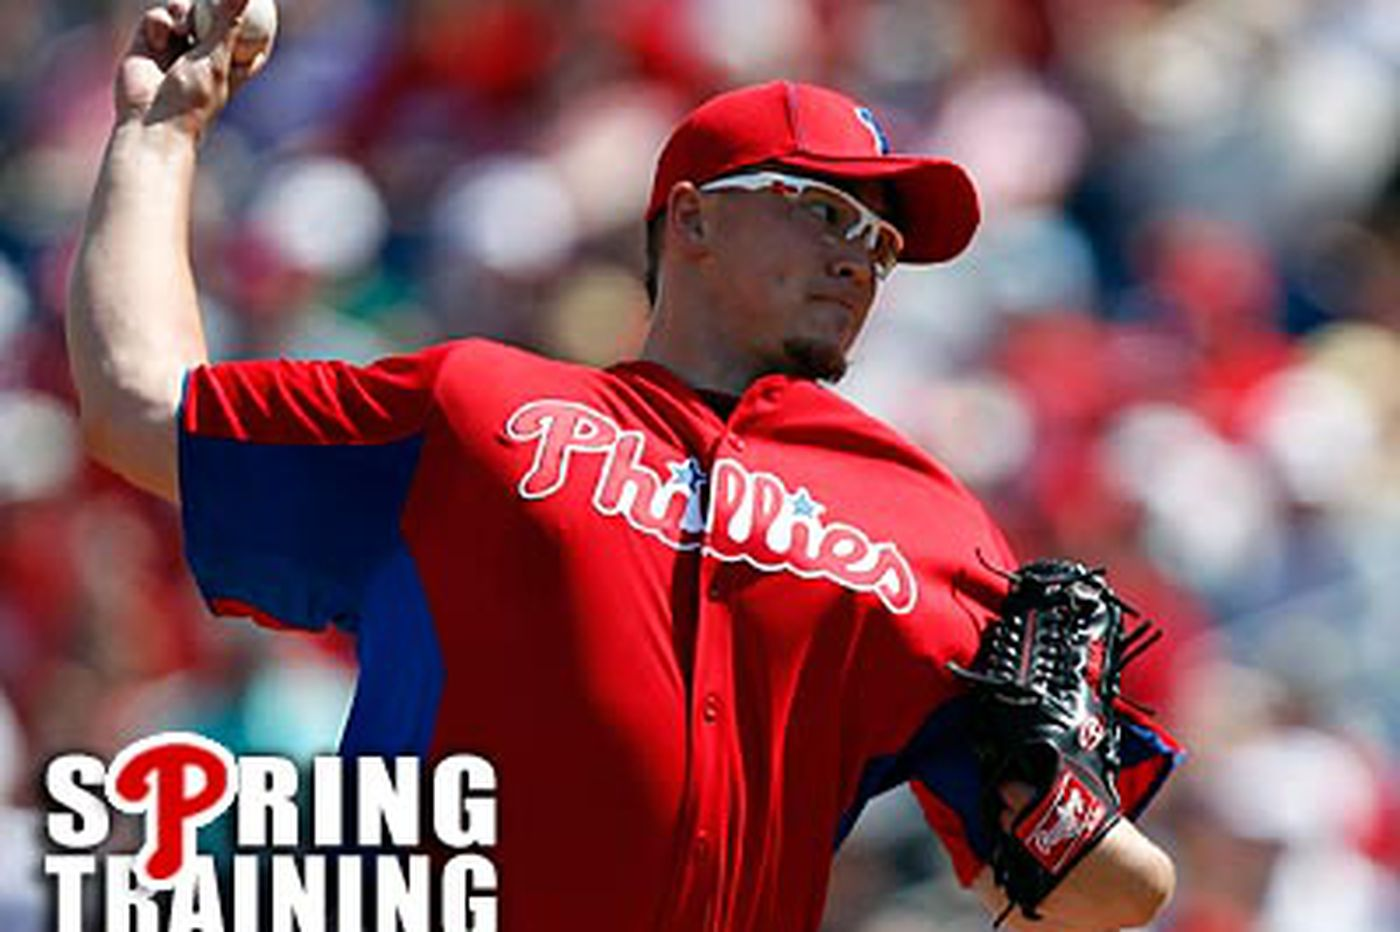 Phillies' Worley shelled against Twins